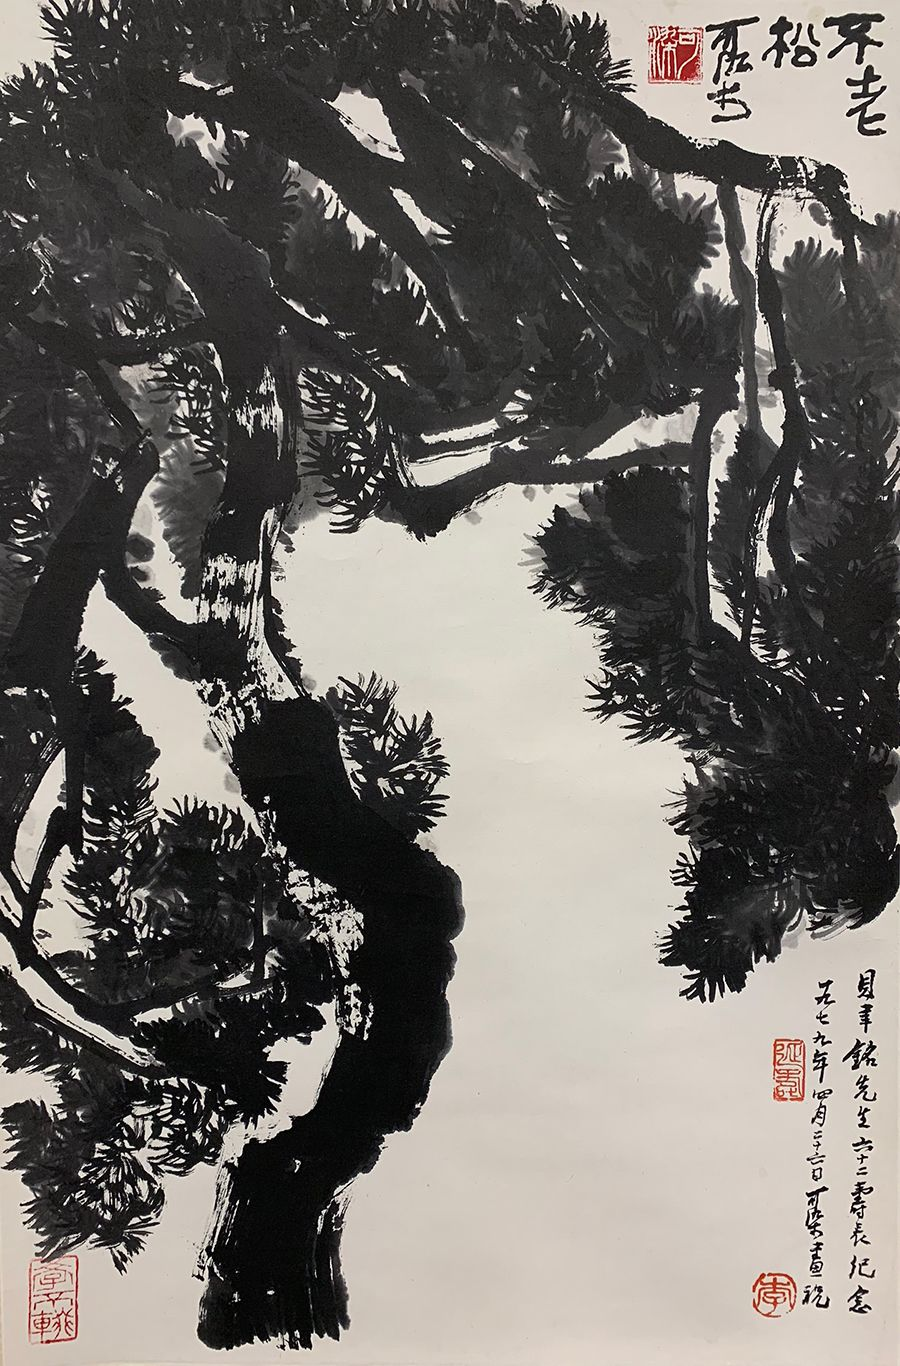 Li Keran (1907-1989), Pine, dedicated to I.M. Pei on his 62nd birthday, dated 1979.